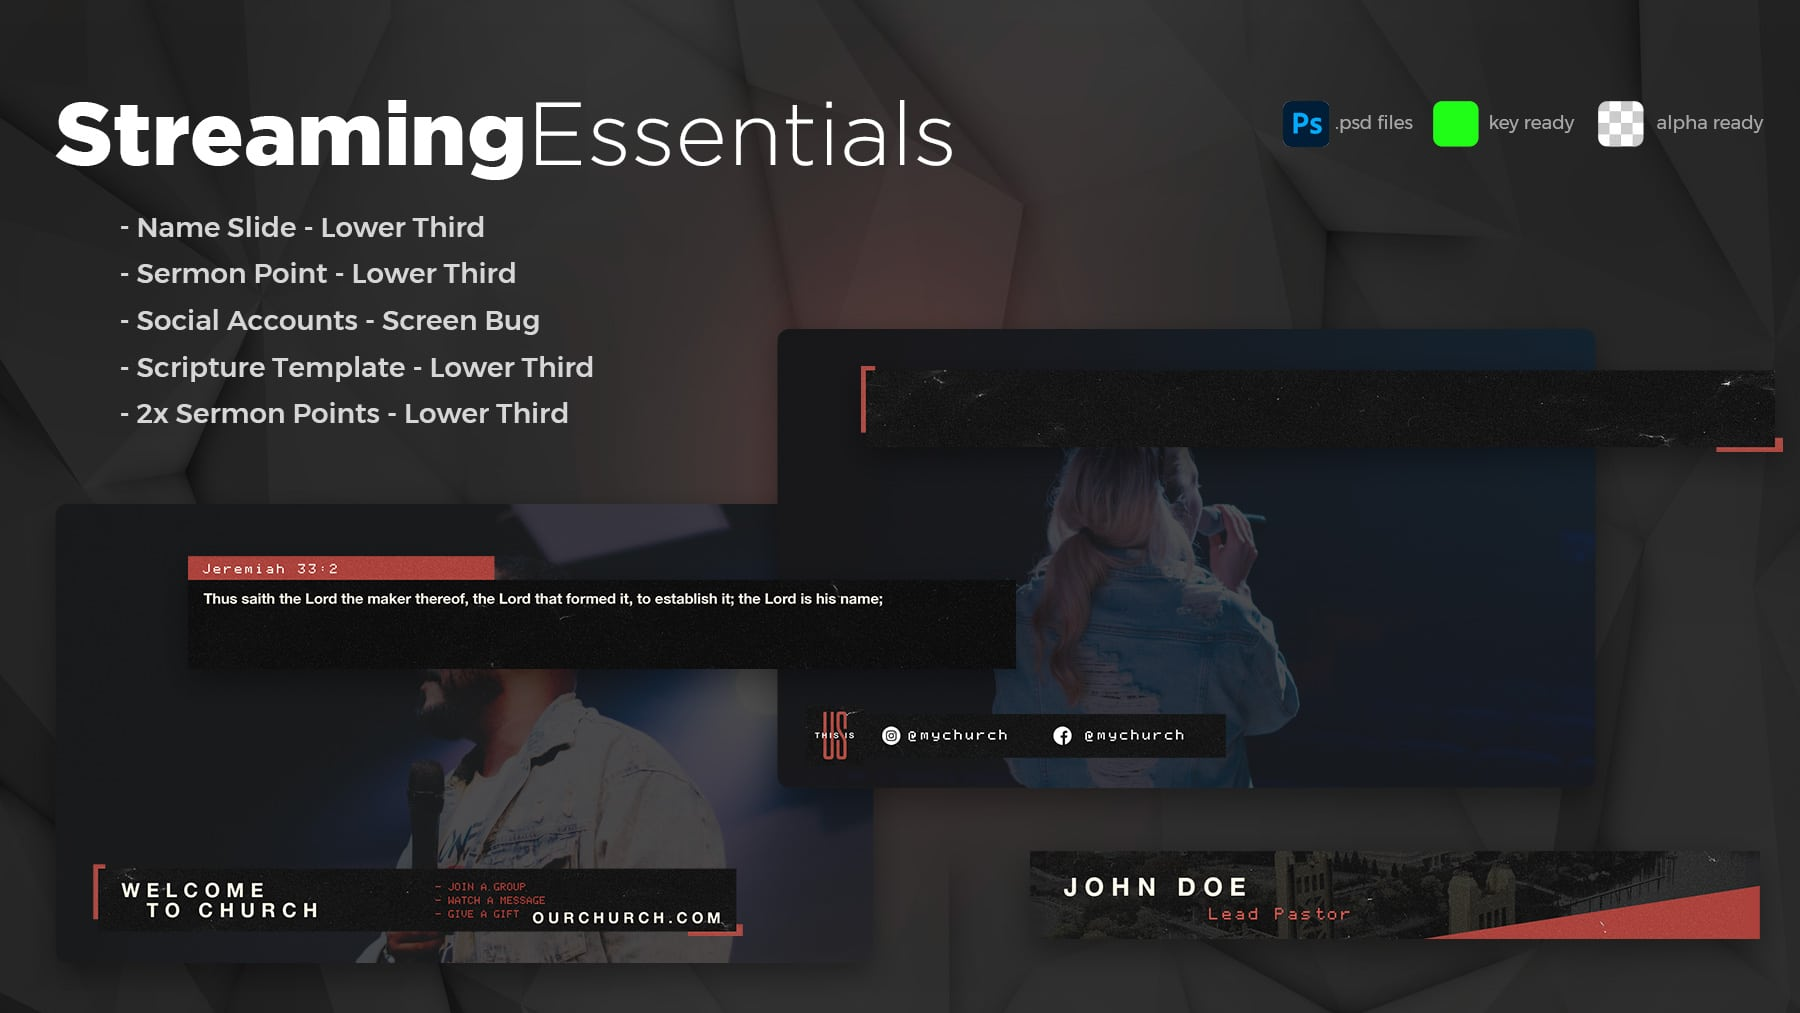 this streaming essentials